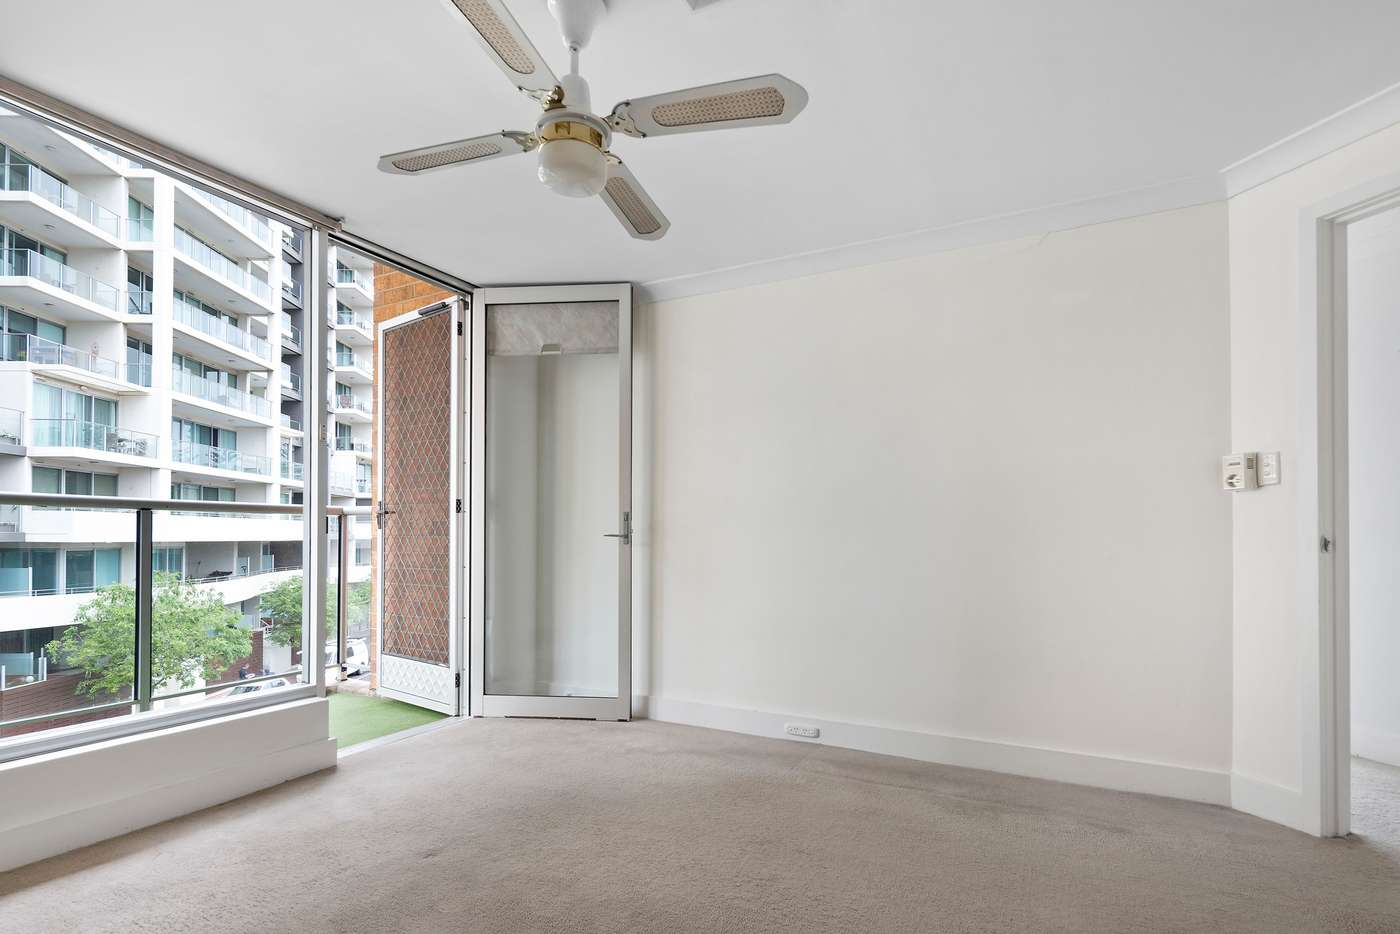 Fifth view of Homely apartment listing, 4/42 Durham Street, Glenelg SA 5045